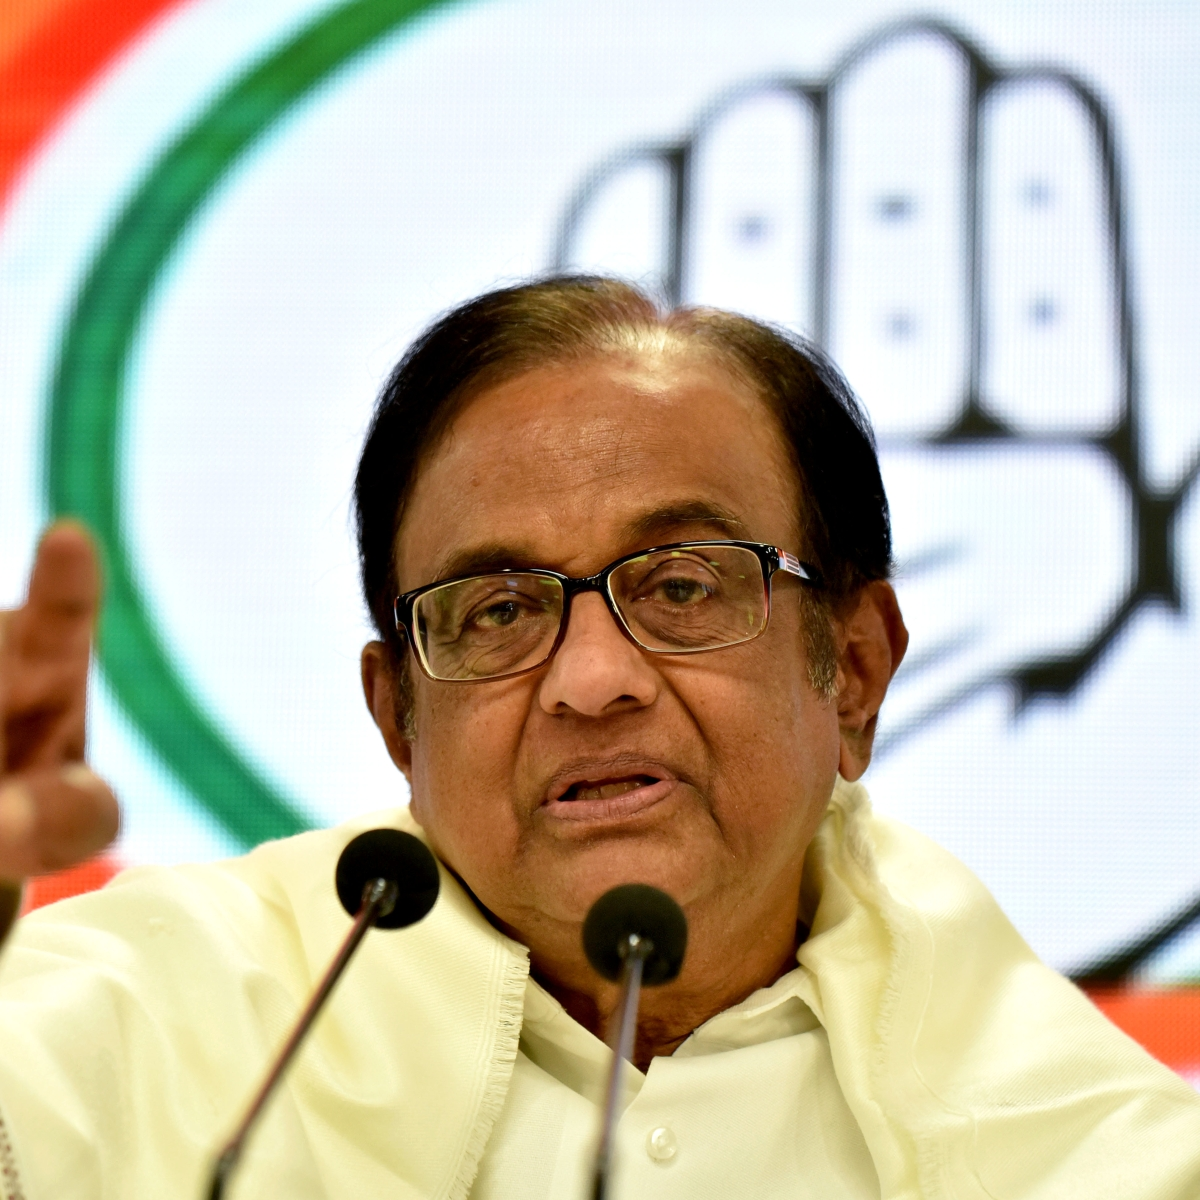 Citizenship bill patently unconstitutional, battleground to shift to SC: Chidambaram